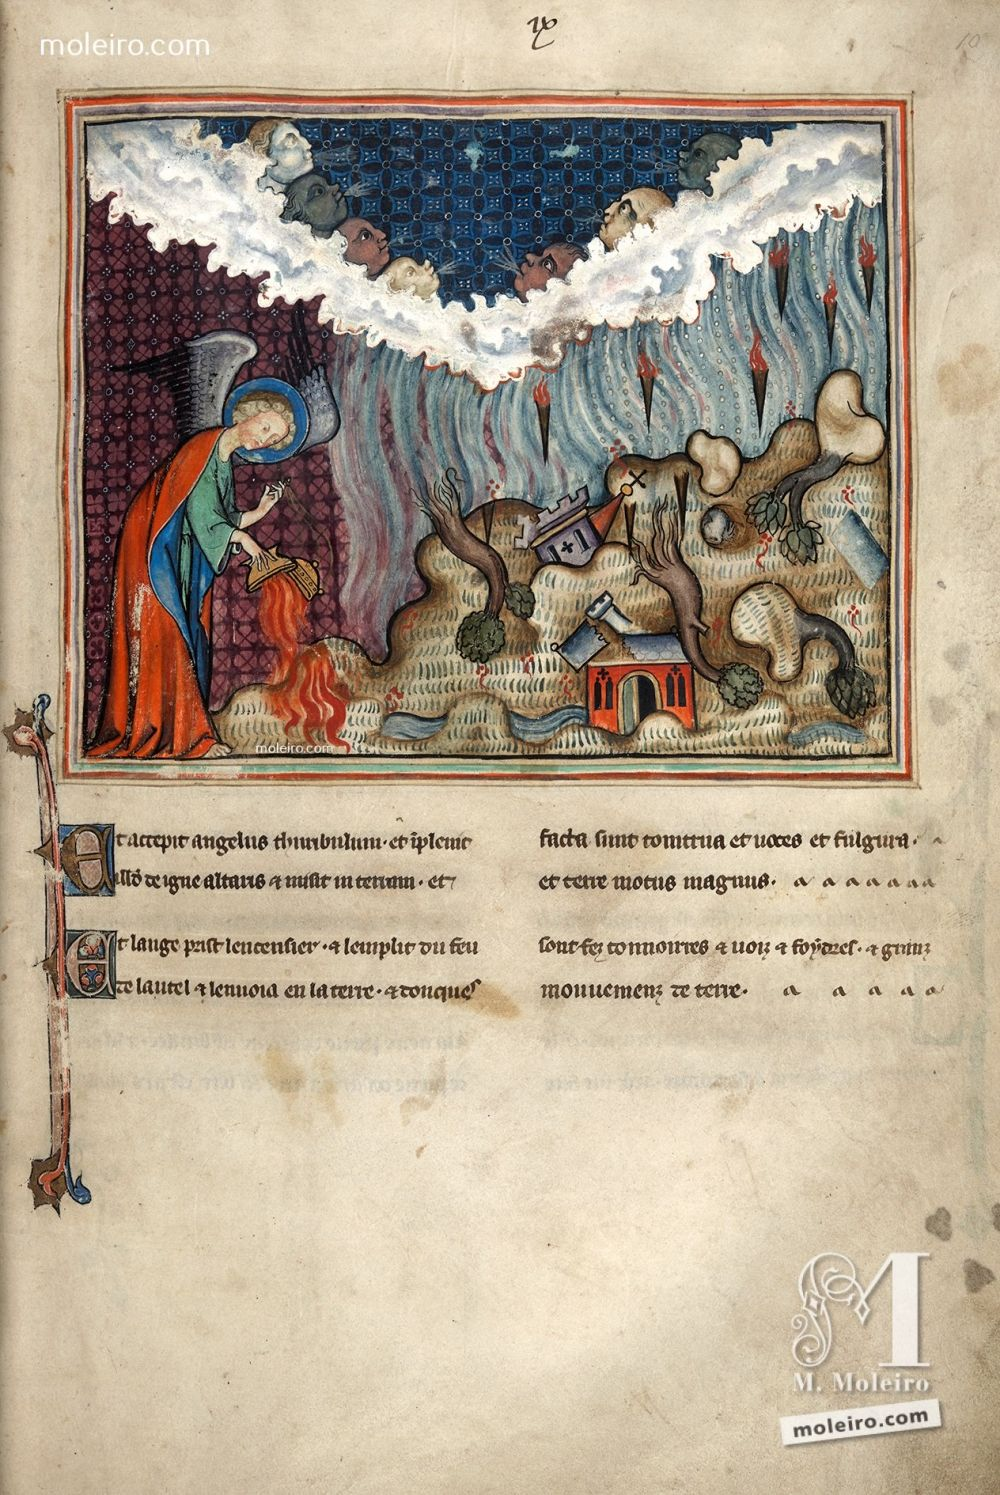 f. 10r · The Angel empties the Censer on the Earth: Thunder, Lightning and the Great Earthquake (Apoc. 8: 5)